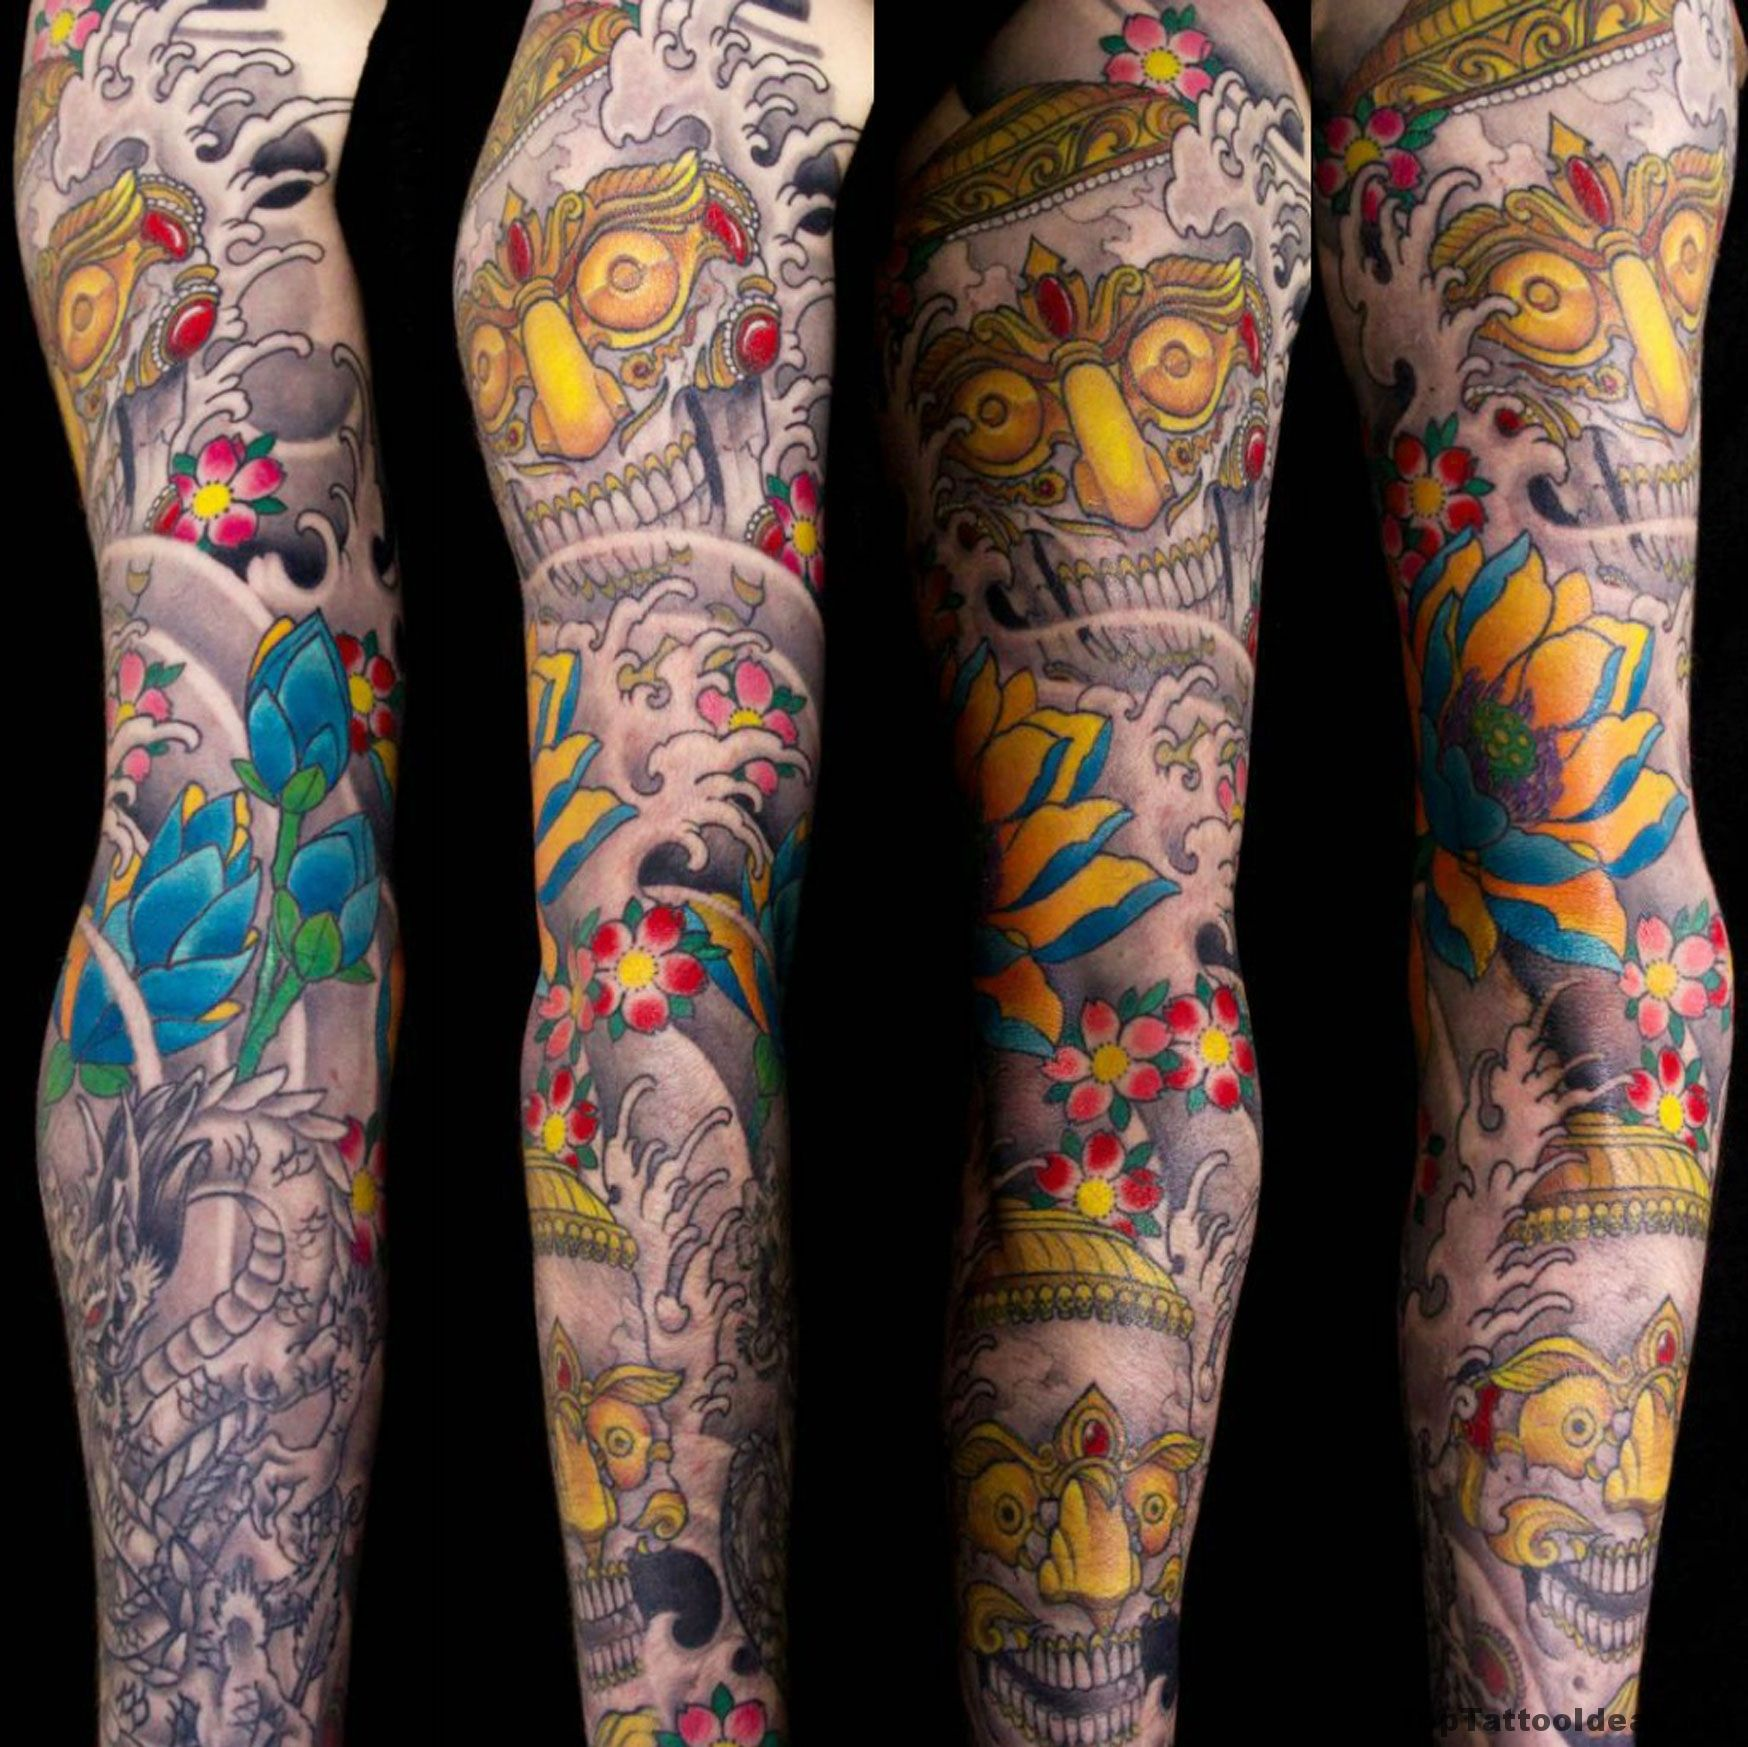 Chinese Style Sleeve Tattoo Idea Top Tattoo Ideas Chinese Sleeve Tattoos Half Sleeve Tattoo Sleeve Tattoos